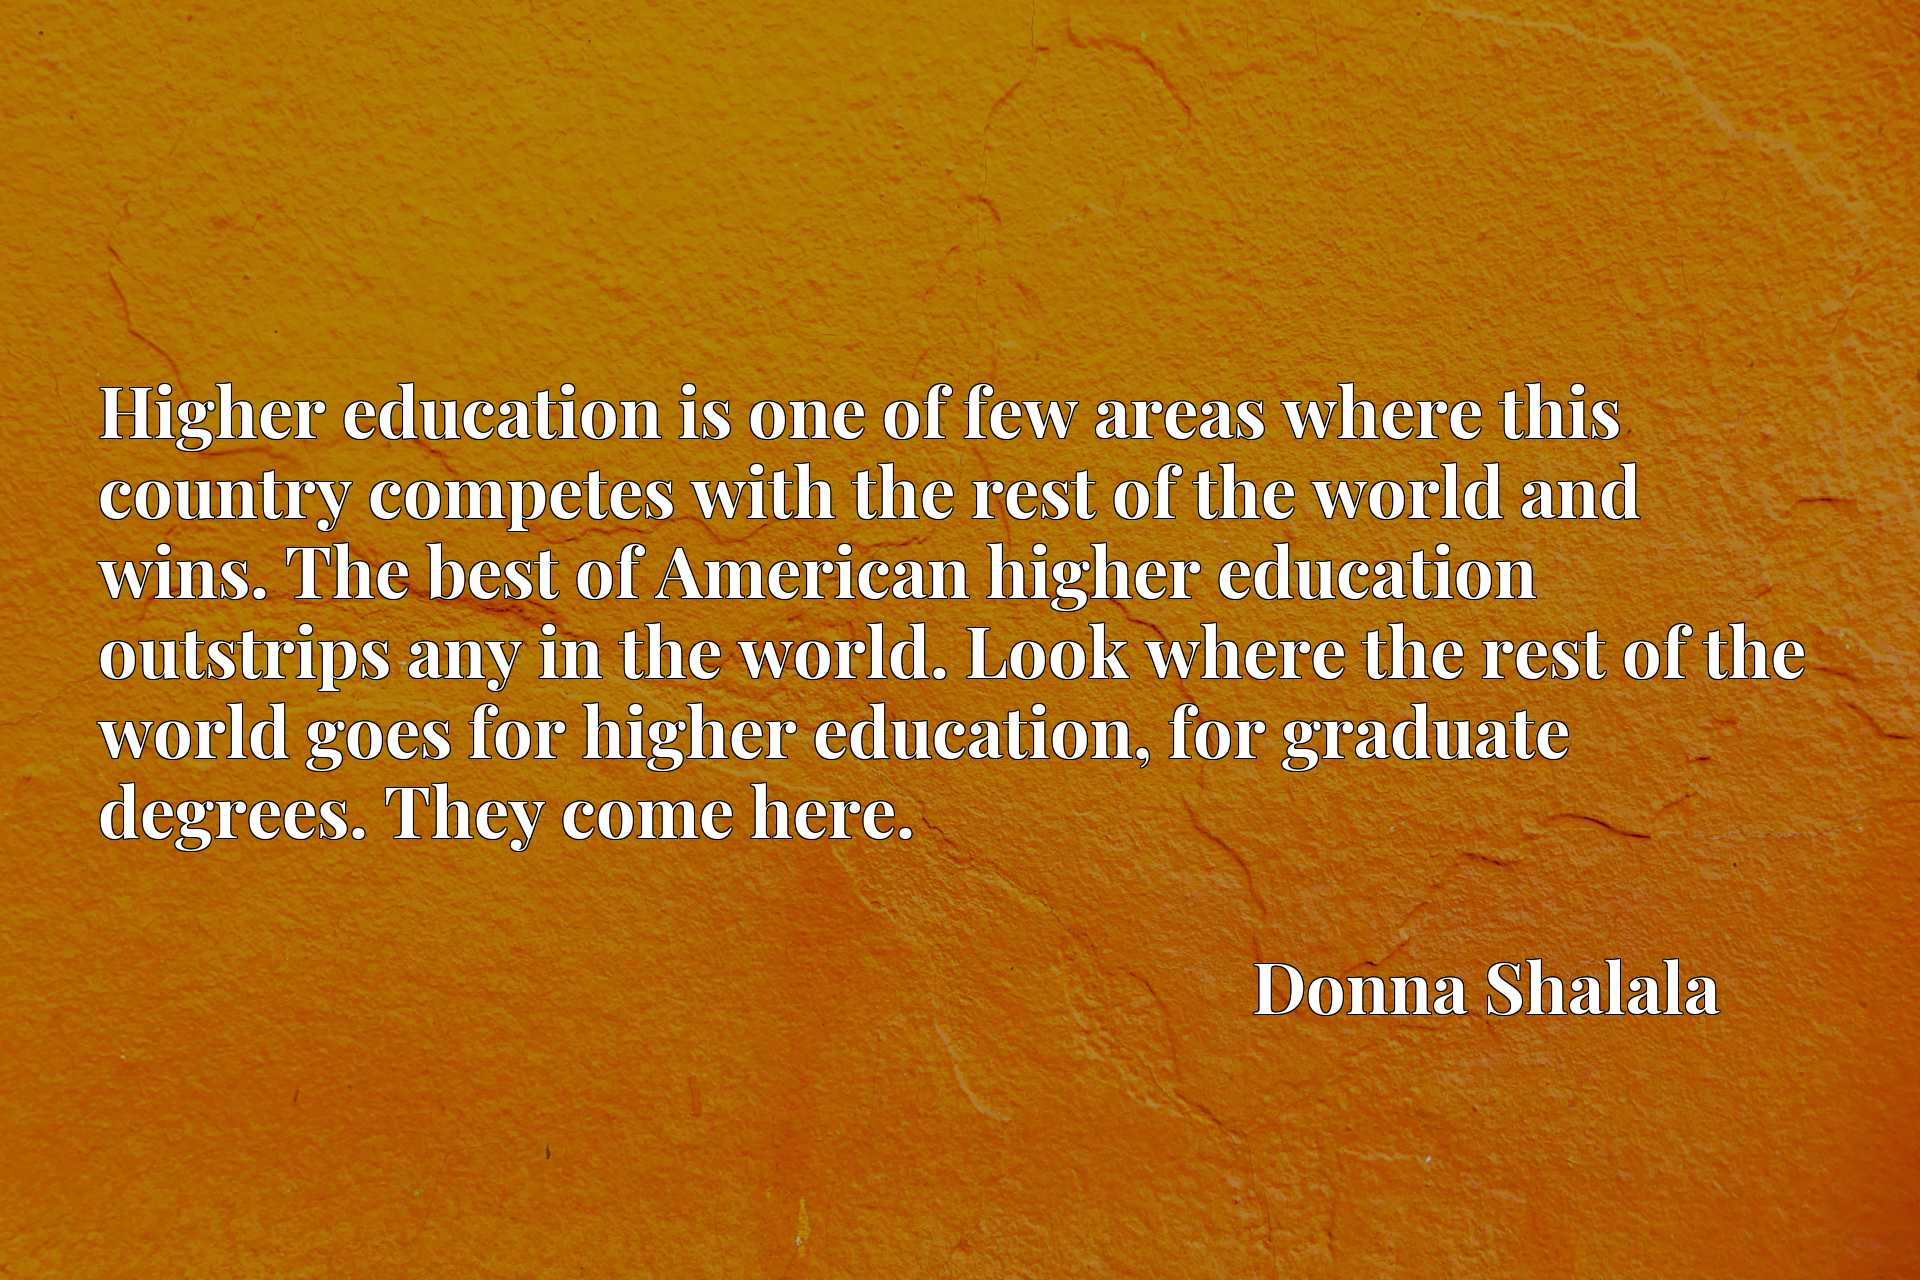 Higher education is one of few areas where this country competes with the rest of the world and wins. The best of American higher education outstrips any in the world. Look where the rest of the world goes for higher education, for graduate degrees. They come here.